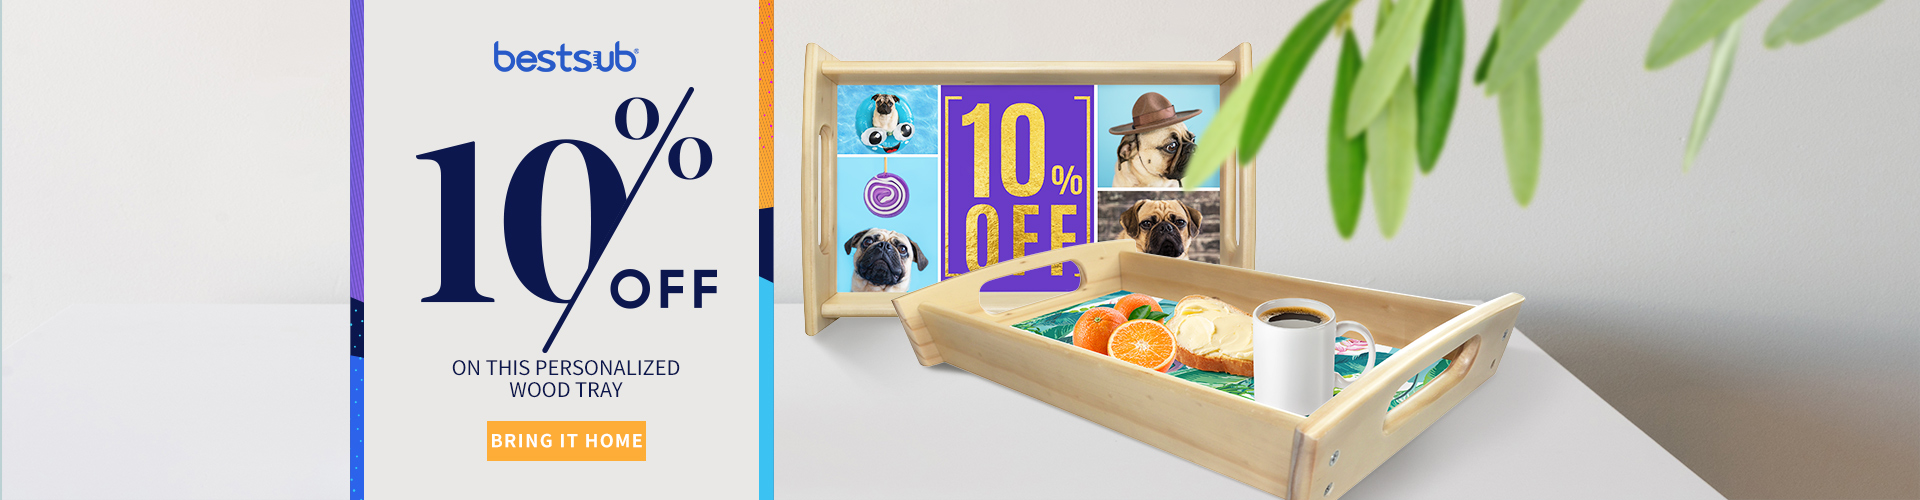 2019-9-23_10_off_on_this_Personalized_Wood_Tray_new_web